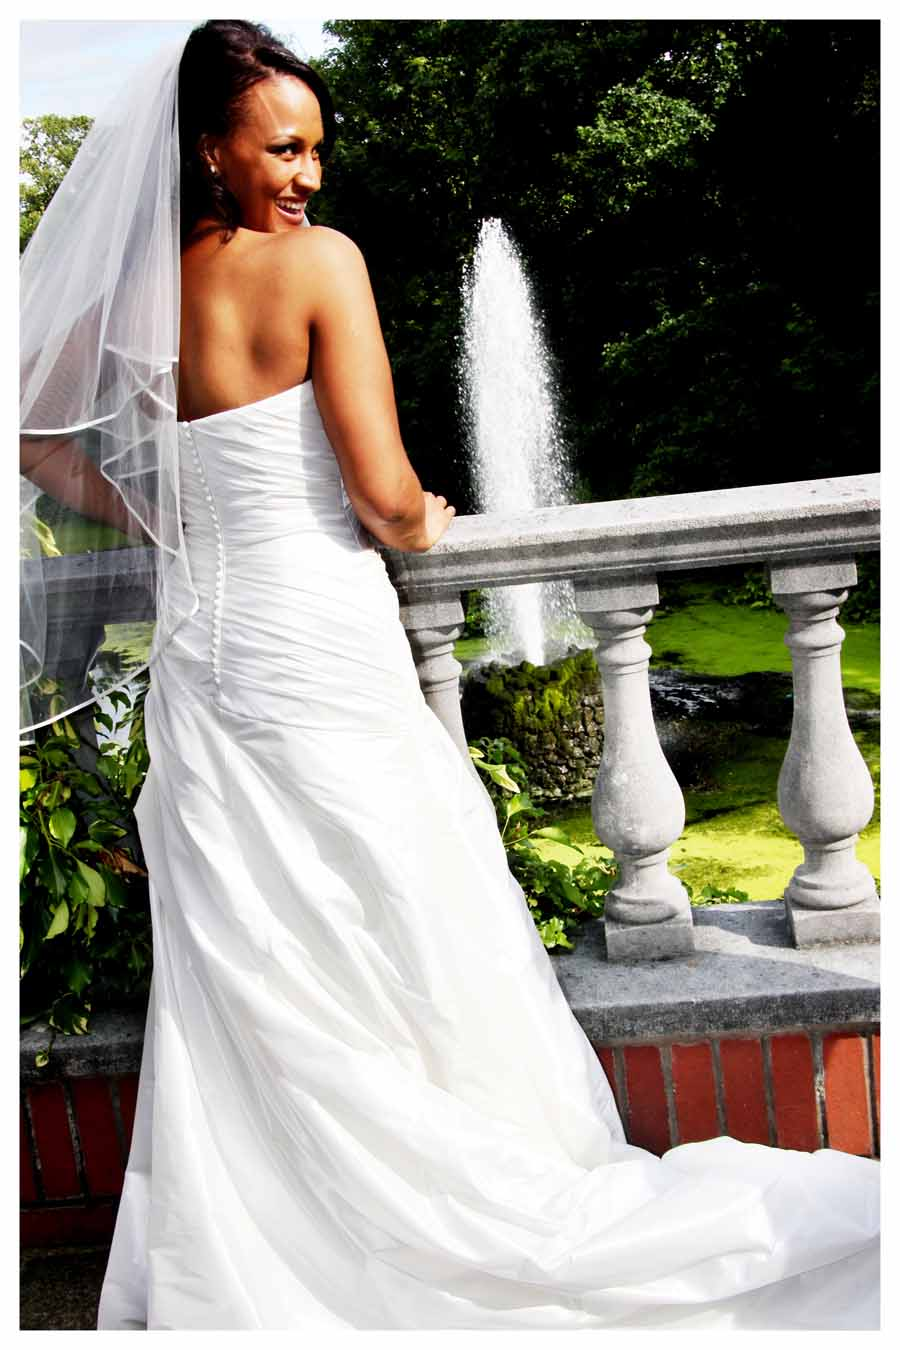 BRIDE Photos by Simeon Thaw copyright 2014 (13).jpg